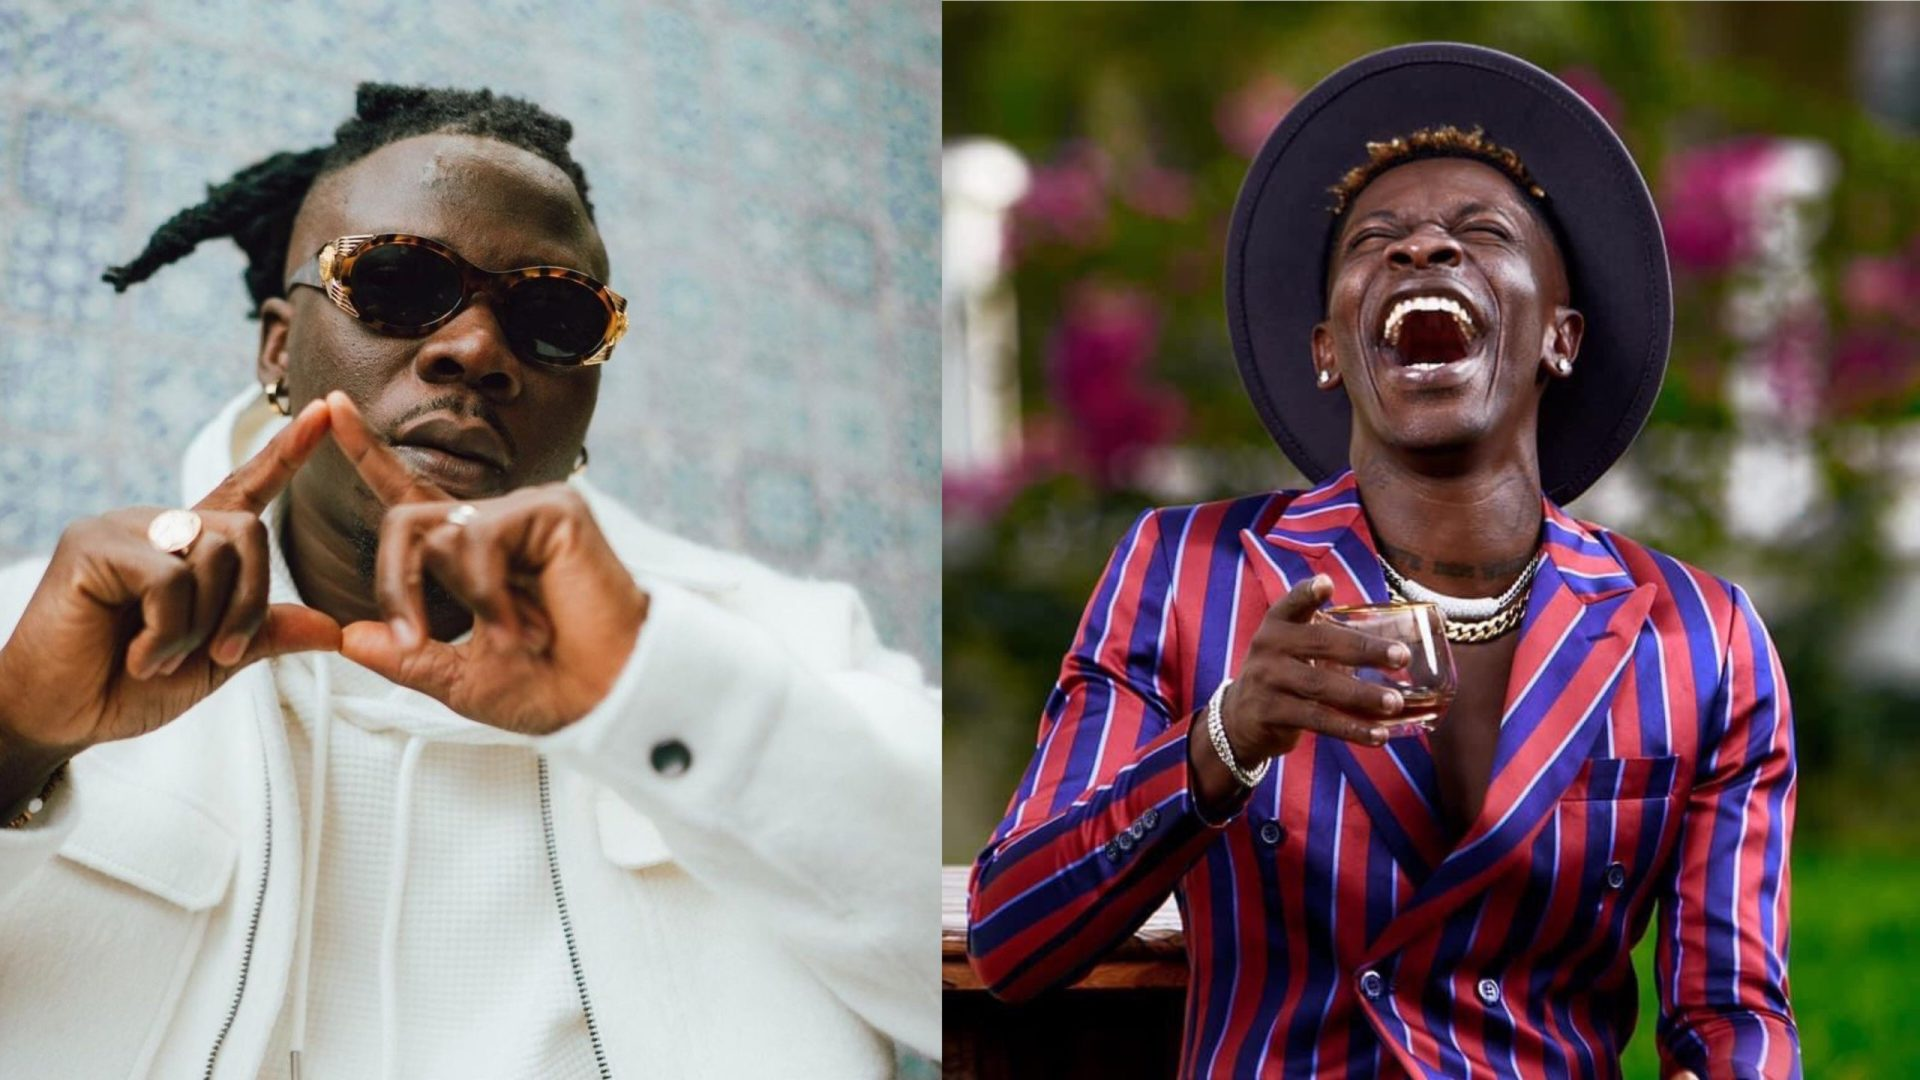 Shatta Wale did better on his 1Don track than Stonebwoy has done on his 1Gad track – Fans' reactions